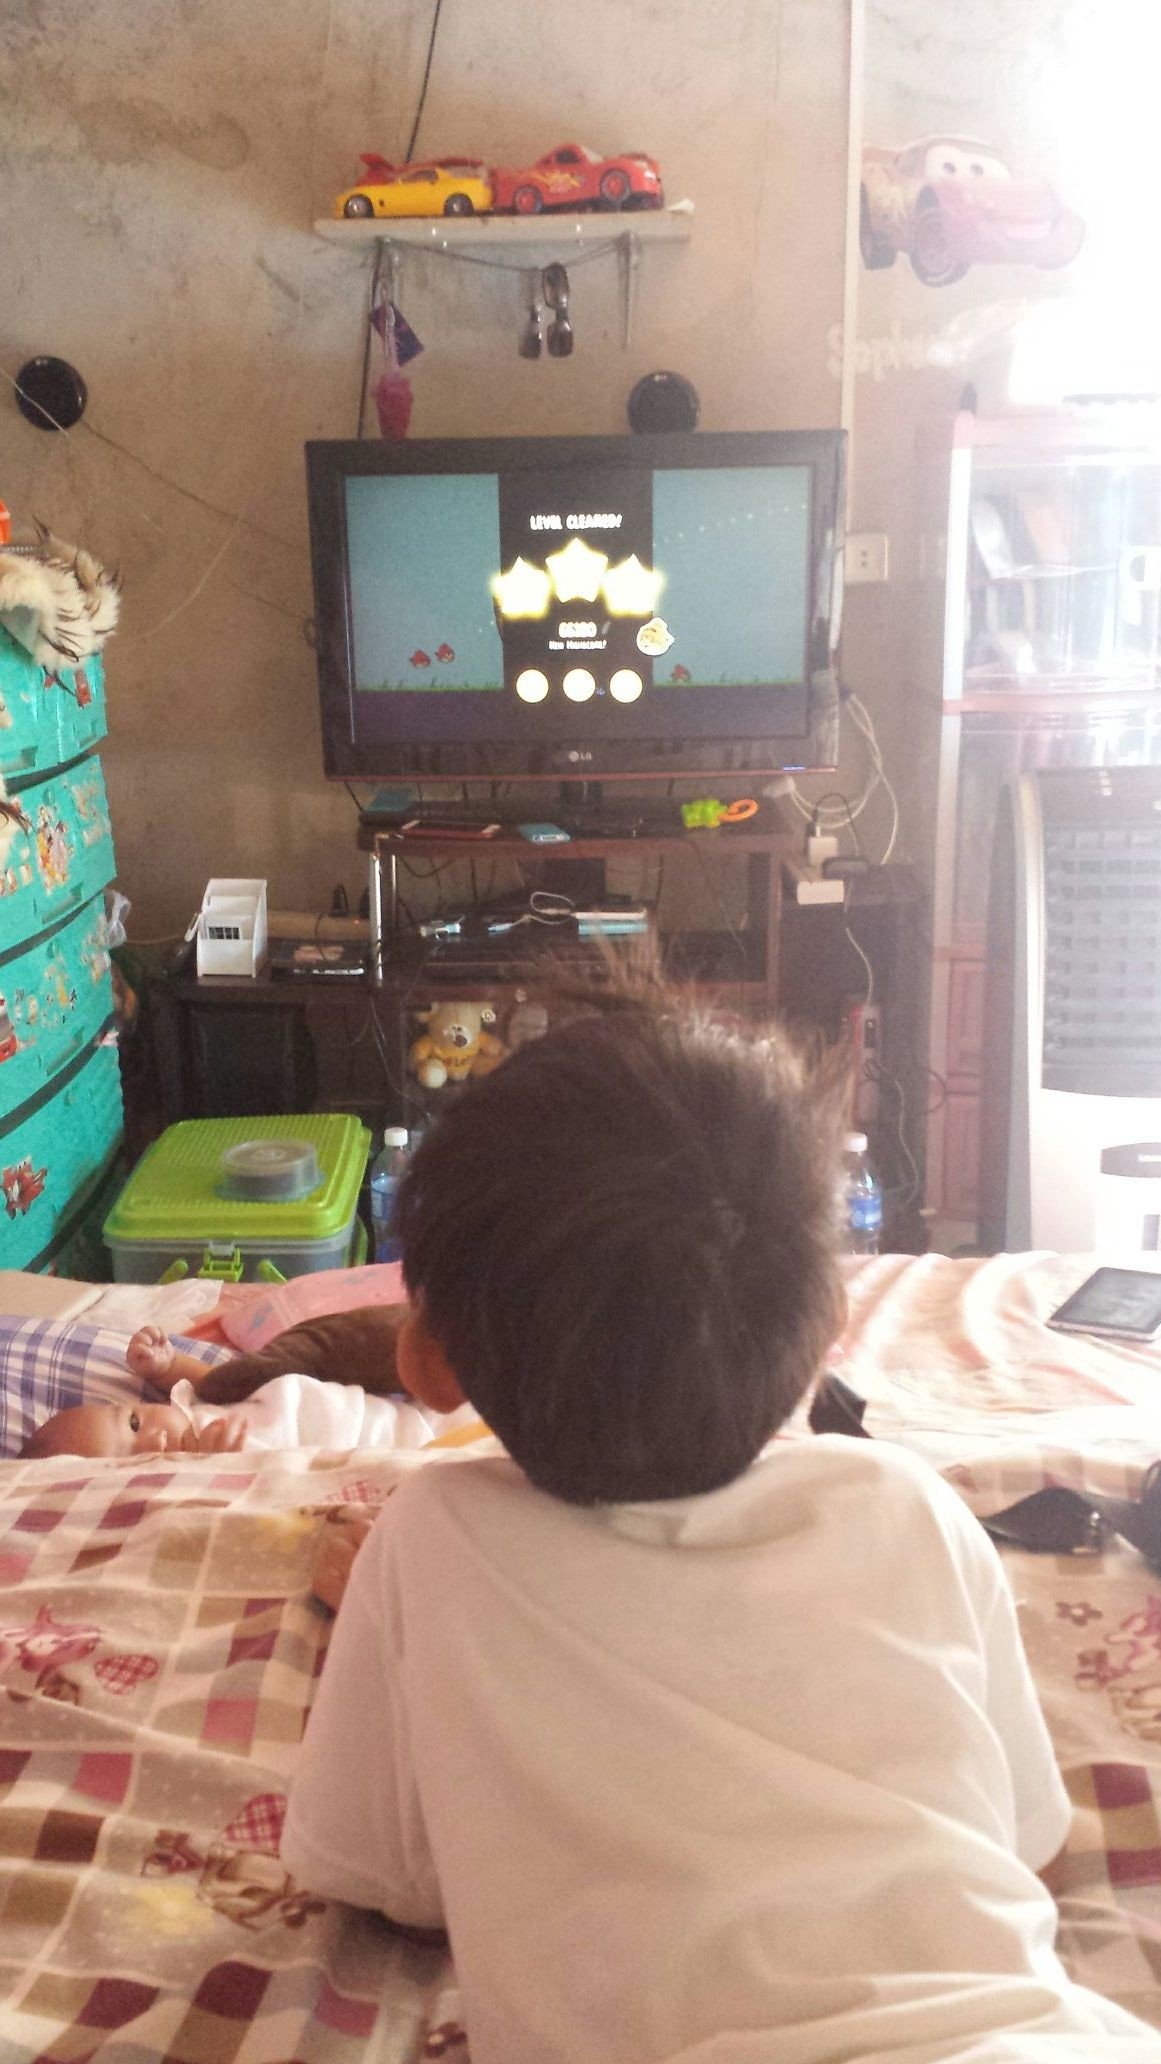 Xian playing angry bird on the big screen while xander watch